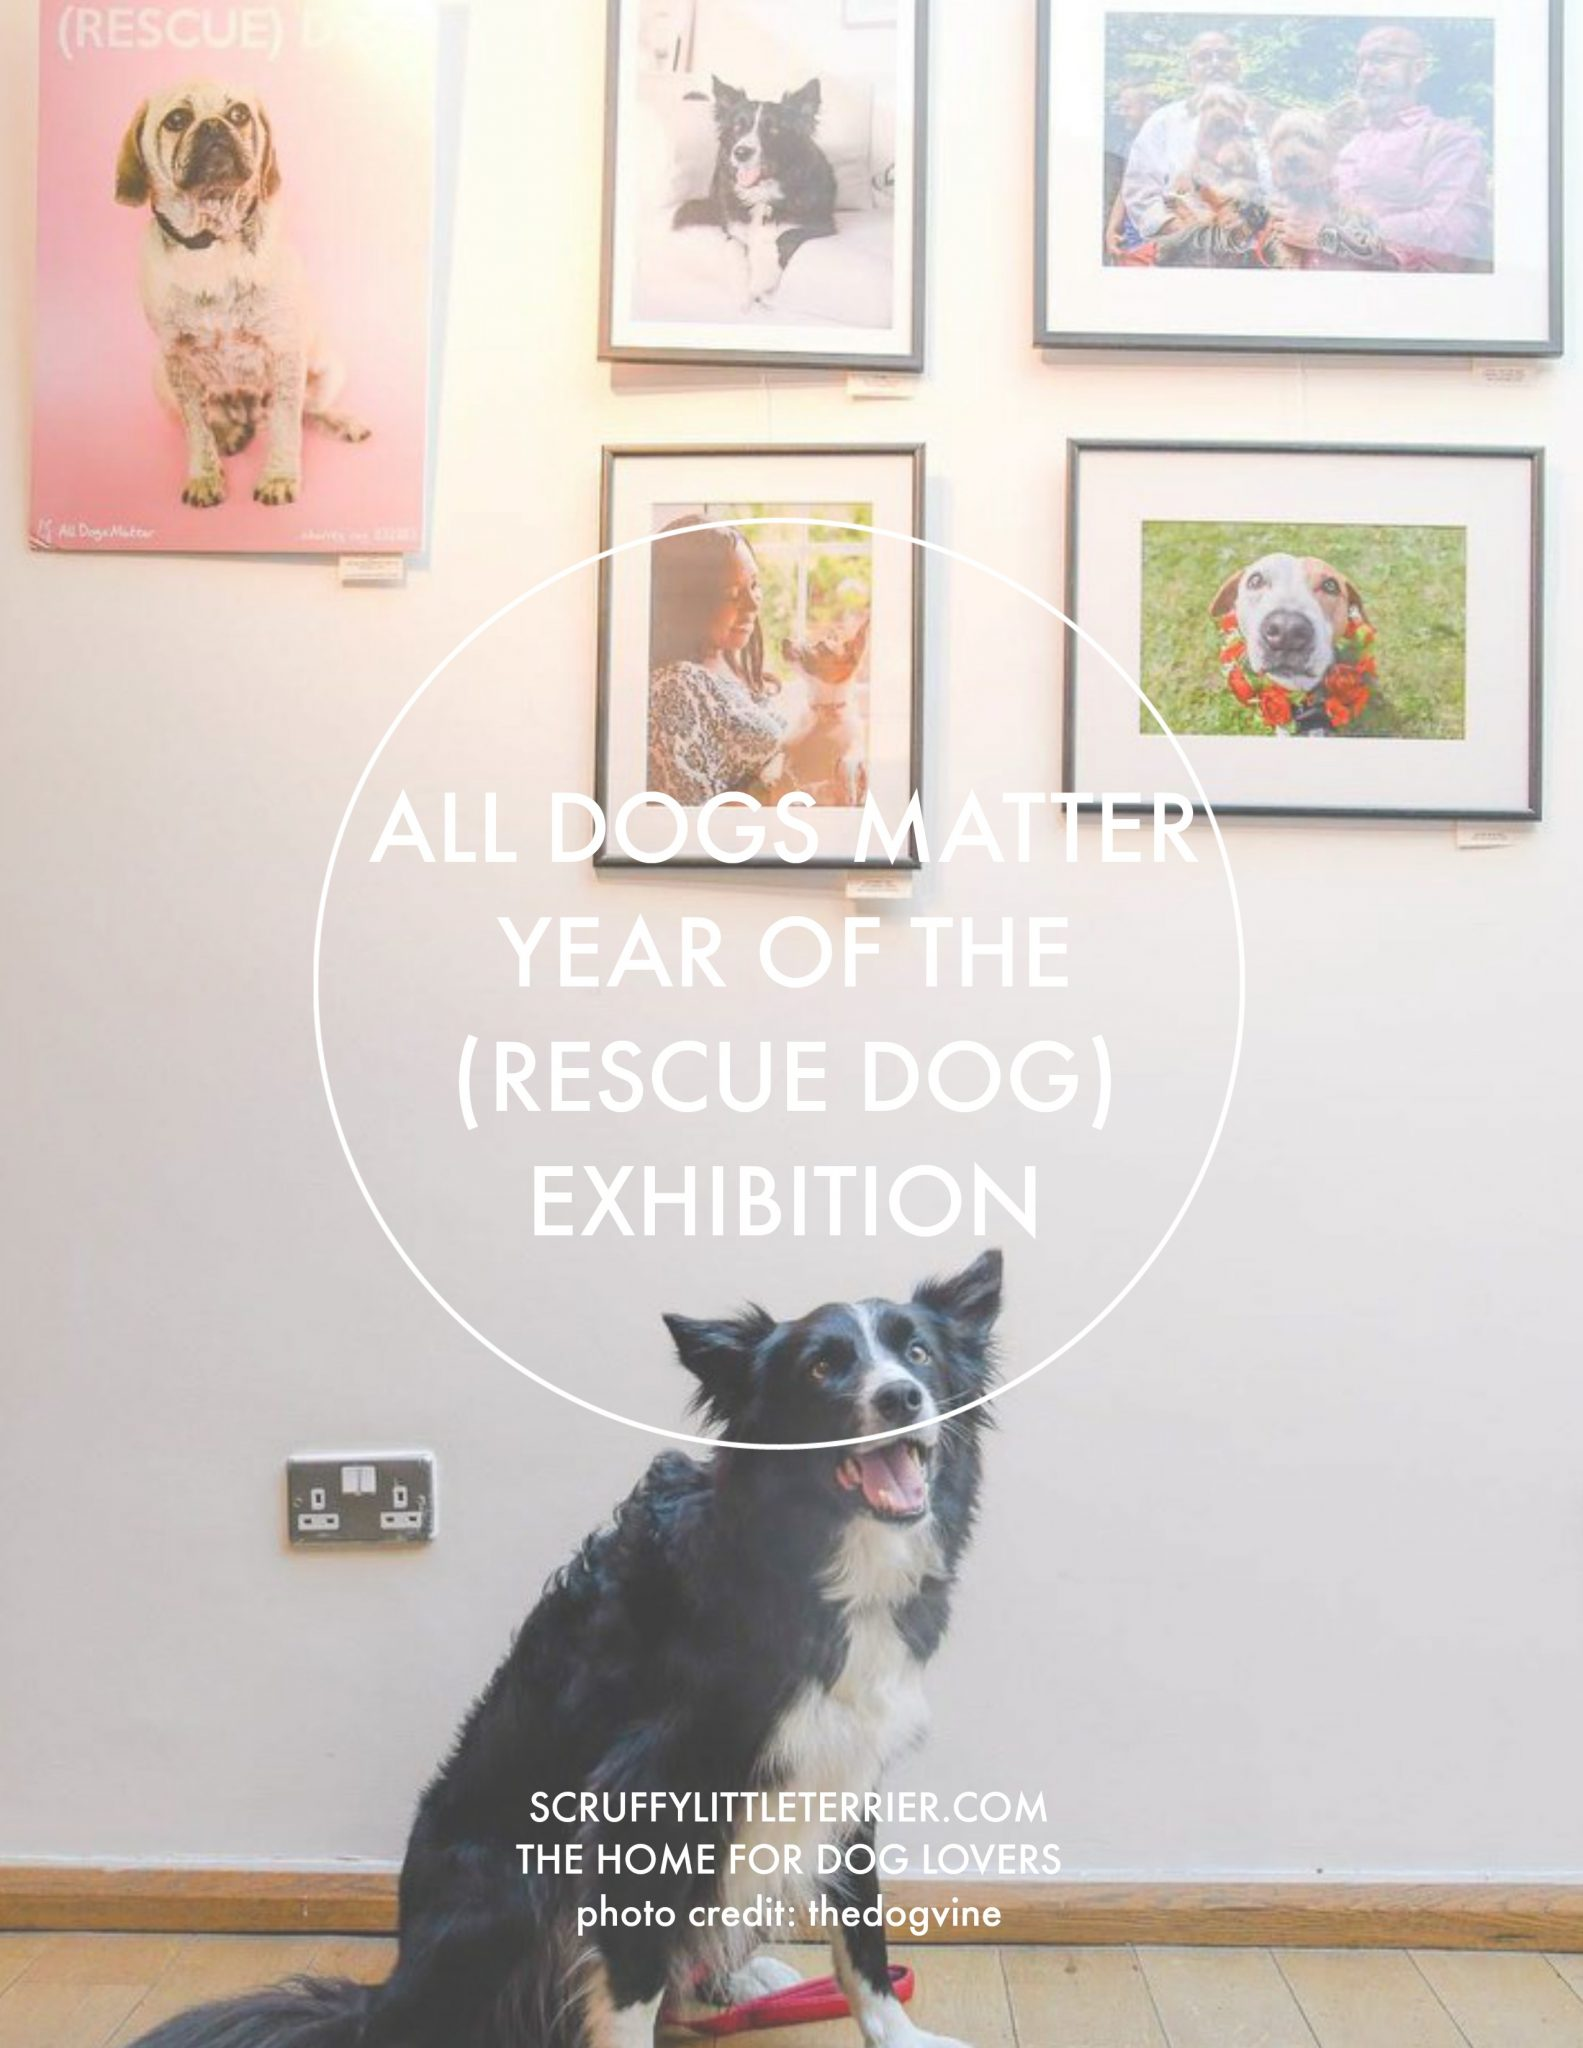 All Dogs Matter {TheYearOfTheRescueDogExhibition} #AllDogsMatter #Photography #Exhibition #RescueDog #DogProducts #London www.scruffylittleterrier.com